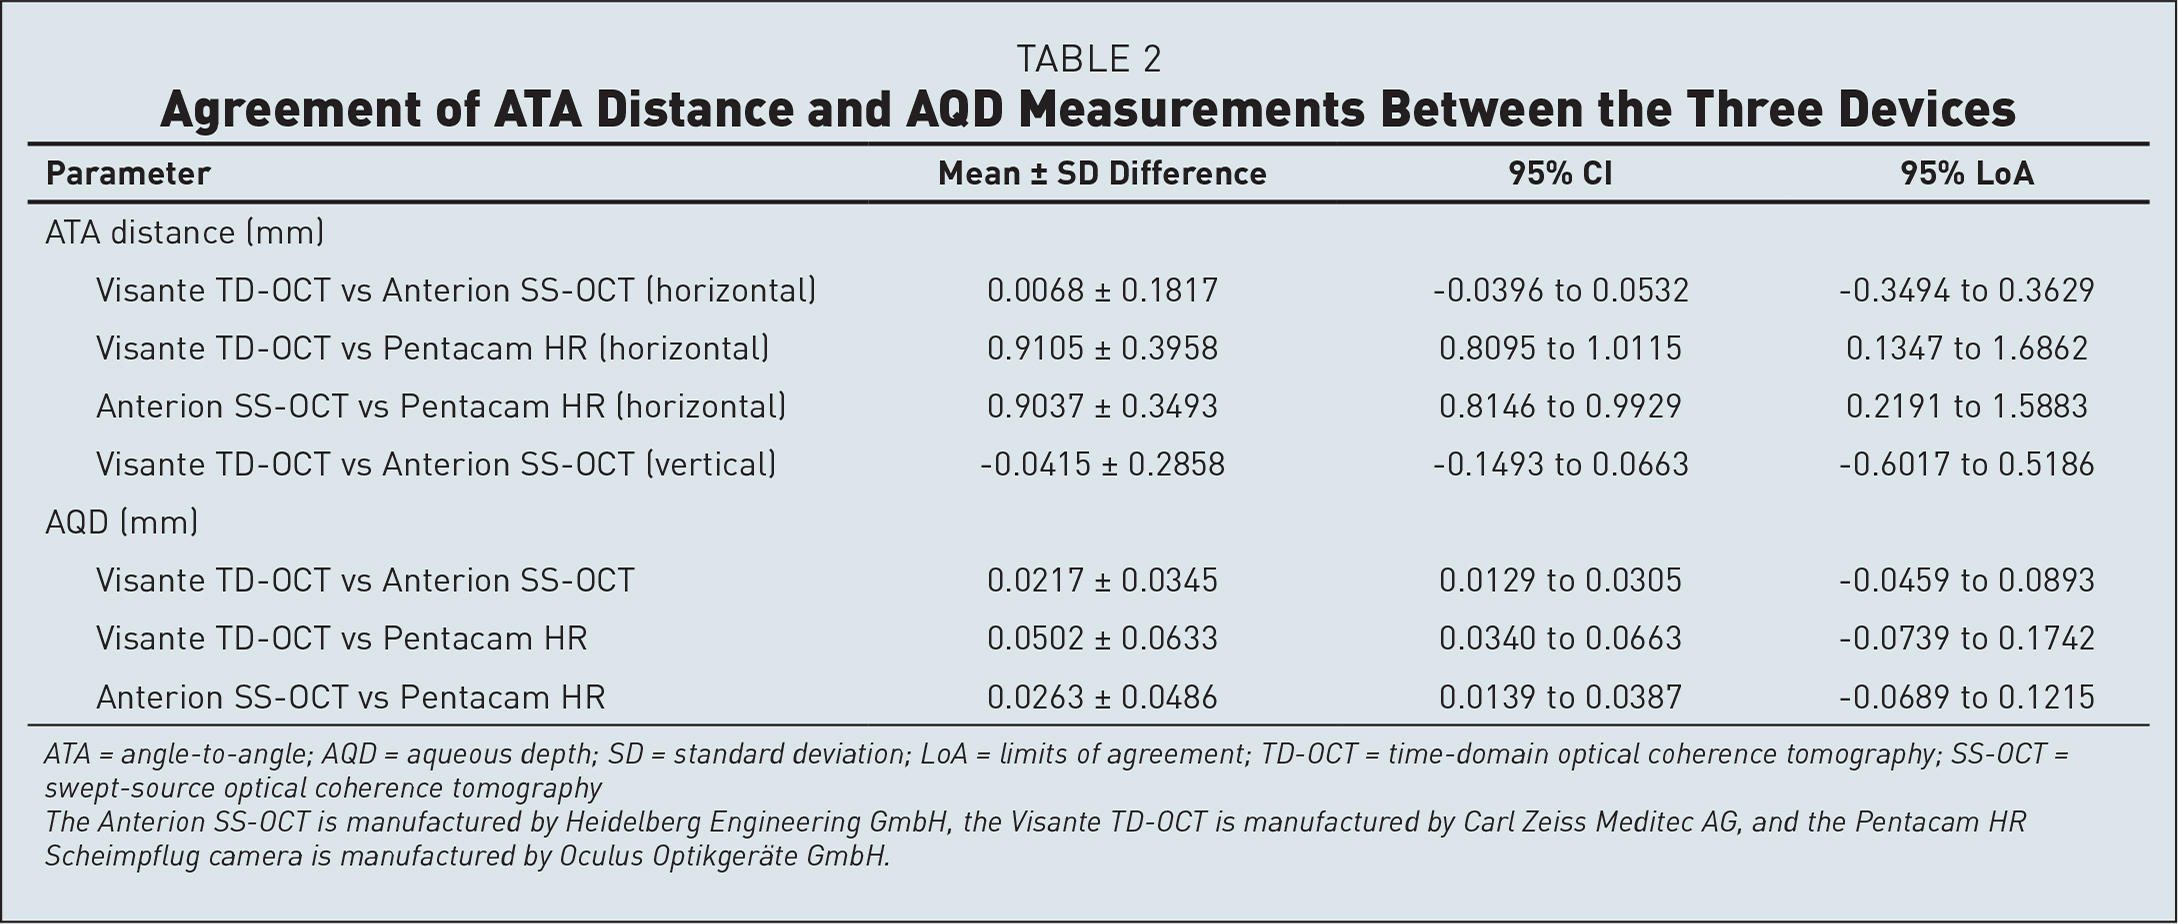 Agreement of ATA Distance and AQD Measurements Between the Three Devices